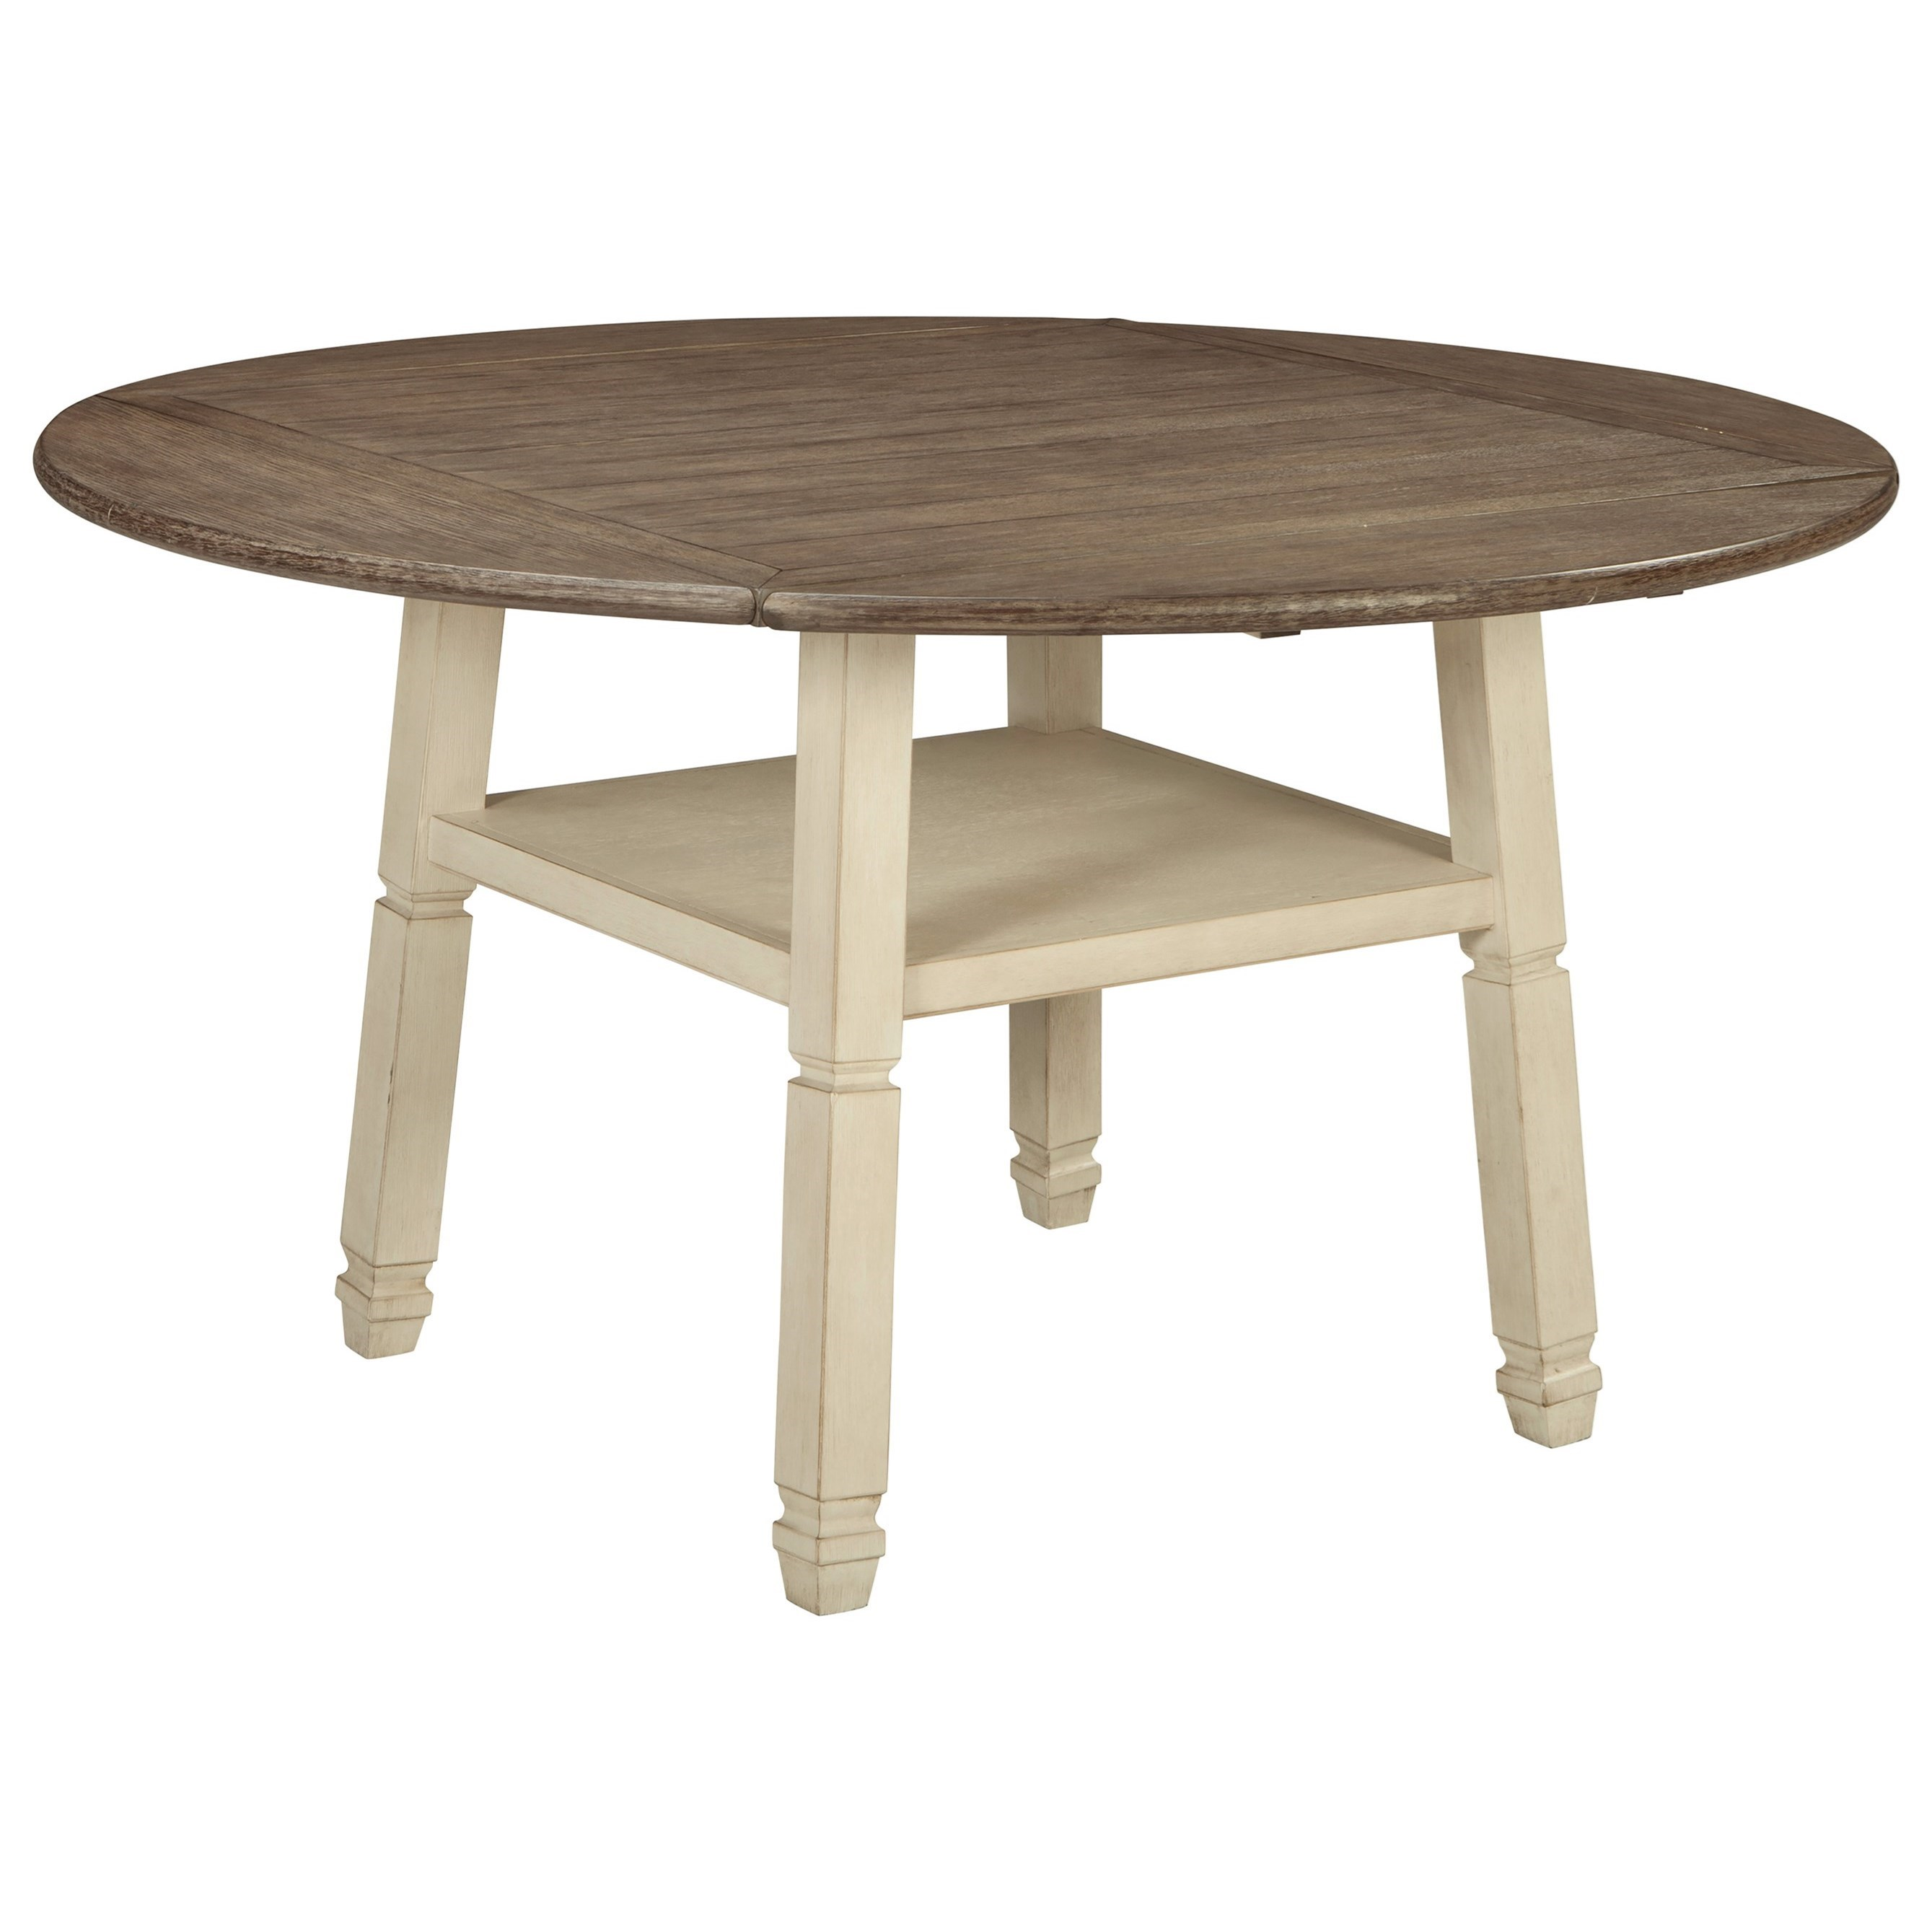 Bolanburg Round Drop Leaf Counter Table by Signature Design by Ashley at Zak's Warehouse Clearance Center